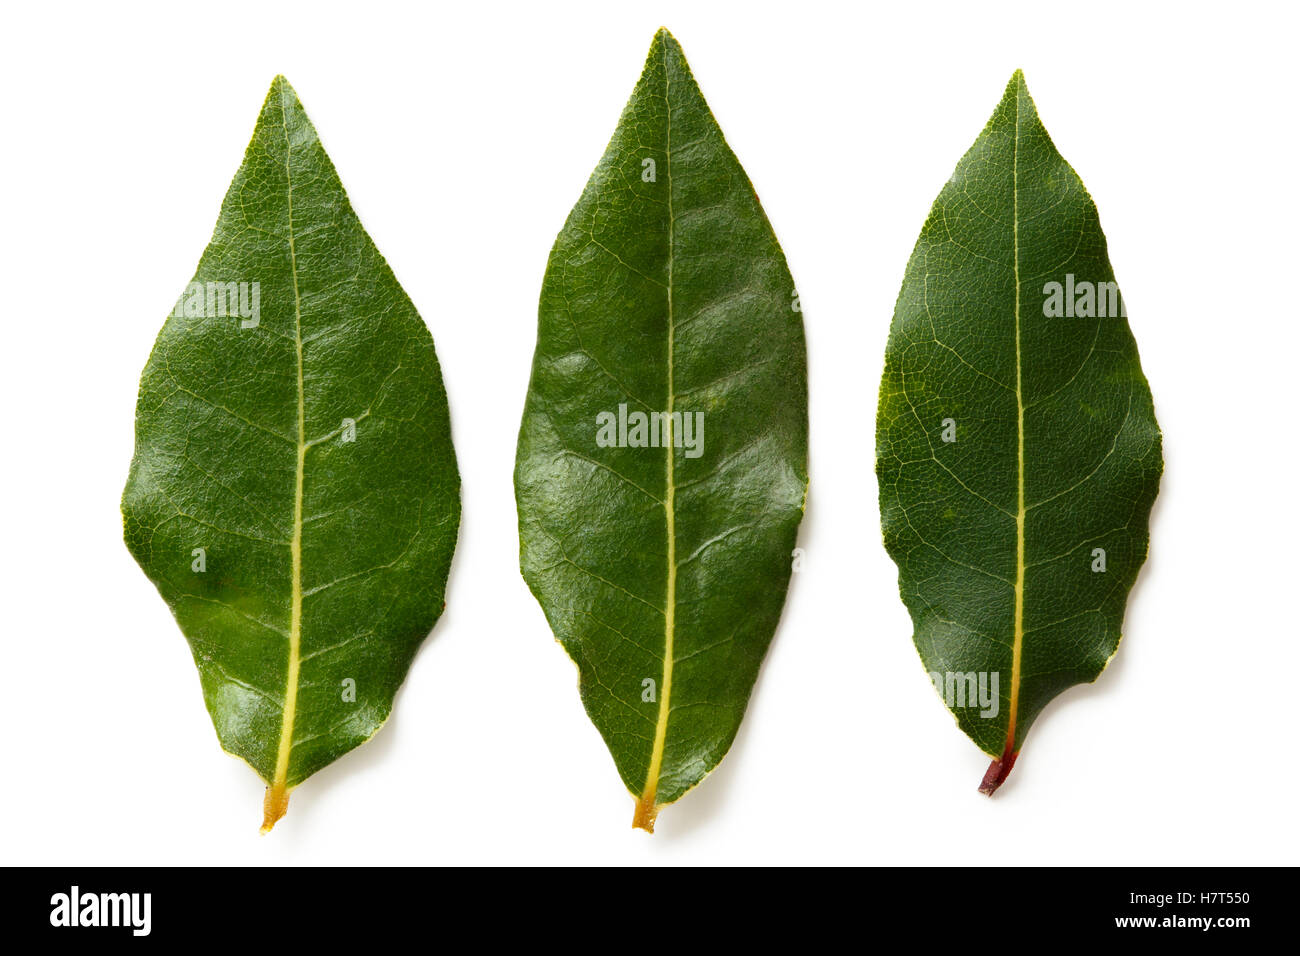 Three bay leaves isolated on white from above. - Stock Image